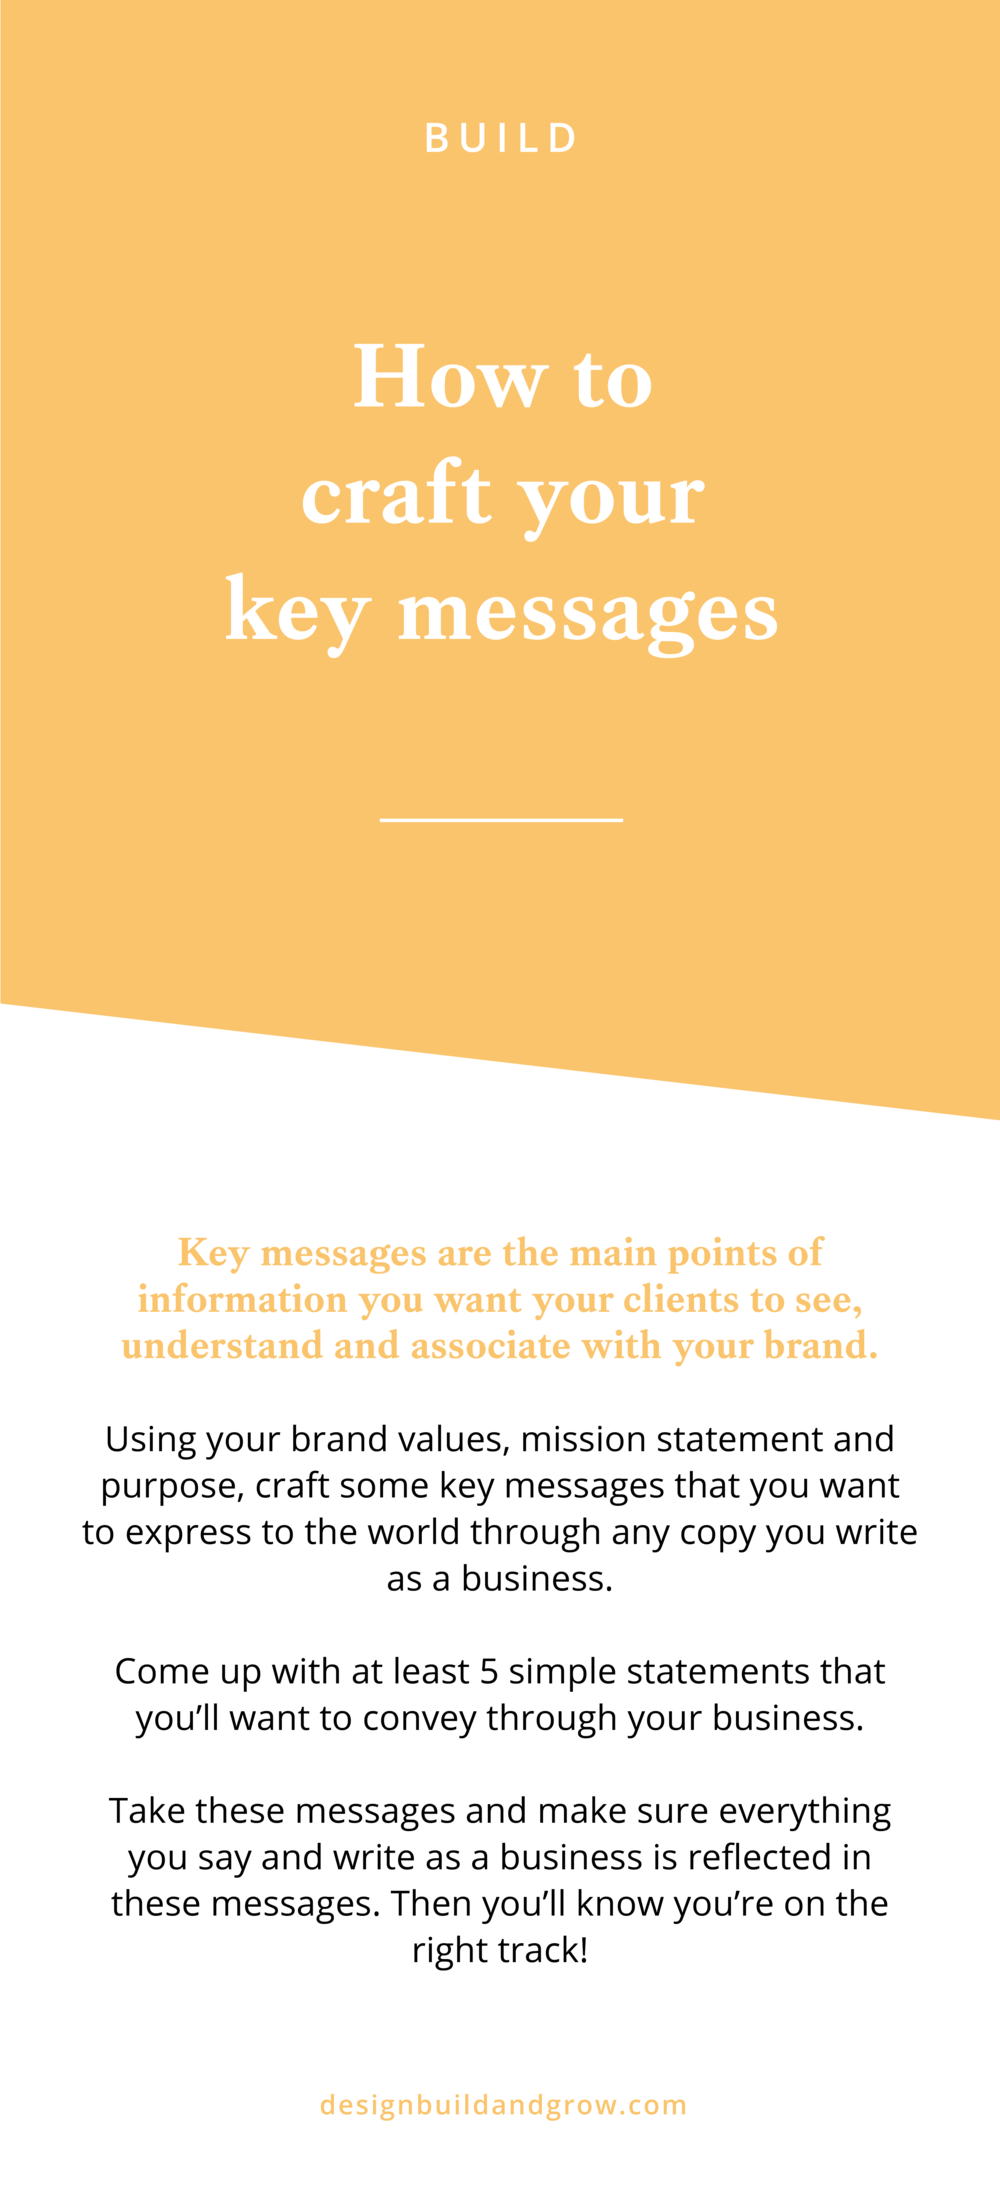 How to craft your key messages